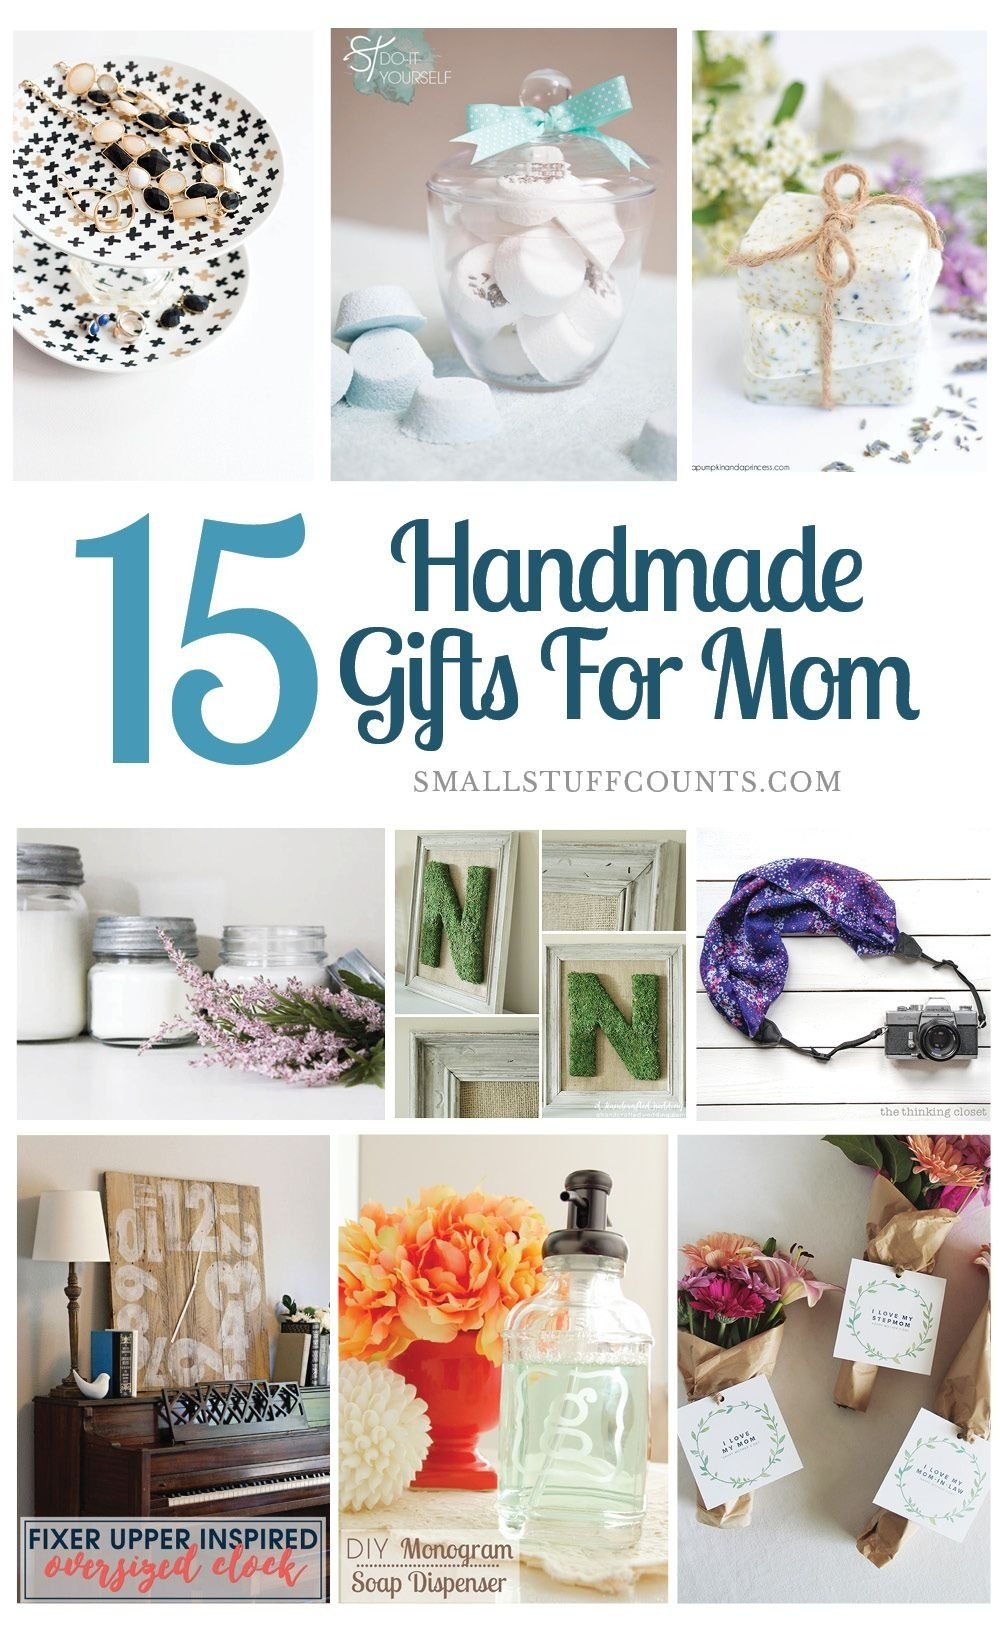 10 Awesome Diy Gift Ideas For Mom beautiful diy gift ideas for mom gift 20 2020